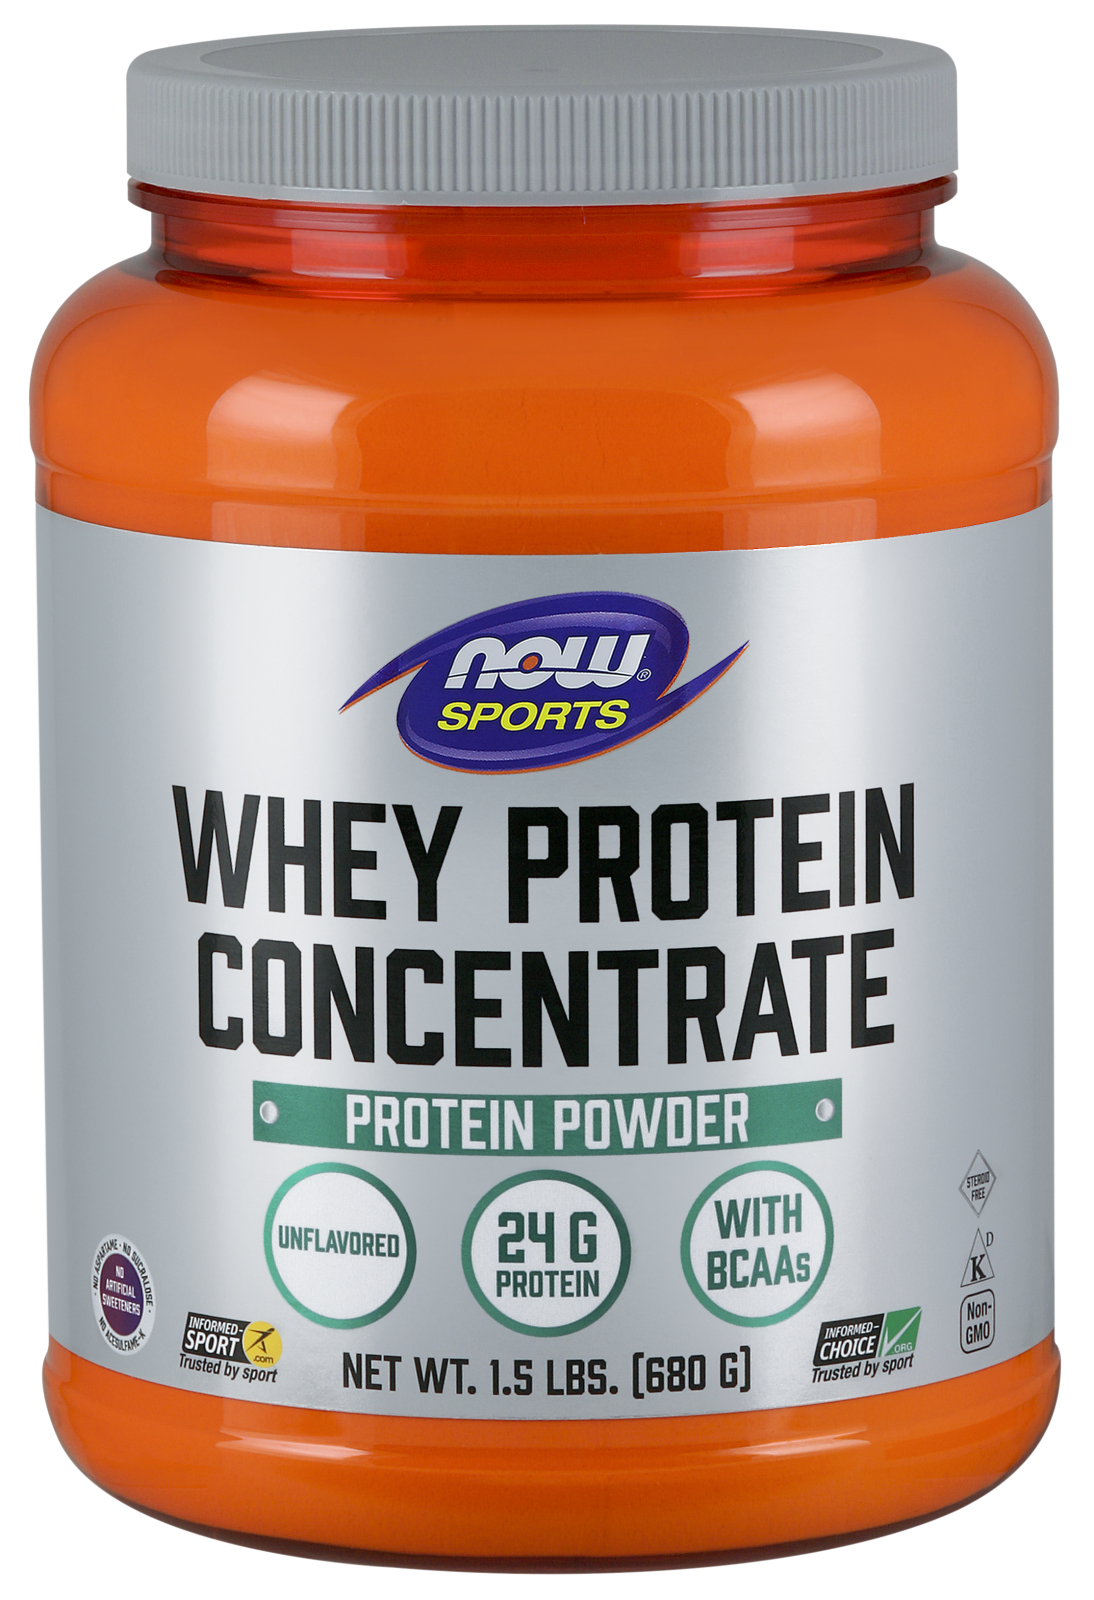 Whey Protein Concentrate Unflavored - 1.5 lbs.